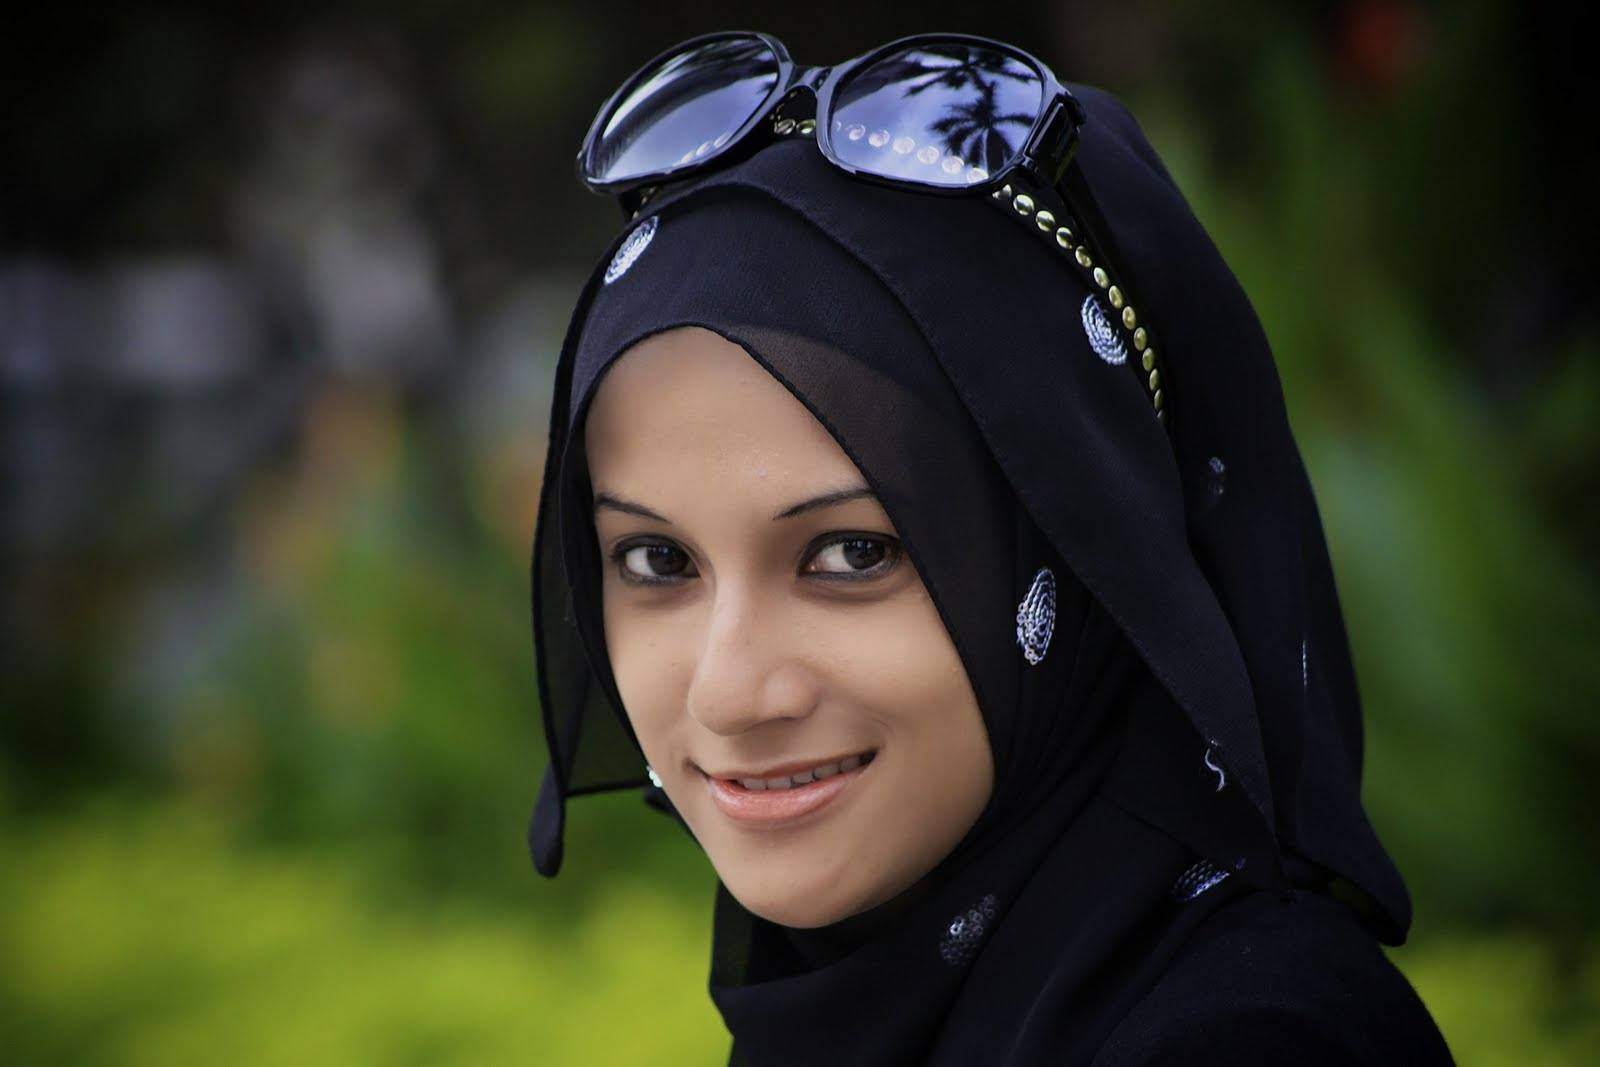 kassel single muslim girls Meet muslim women and find your true love at muslimacom sign up today and browse profiles of muslim women for freelink value.